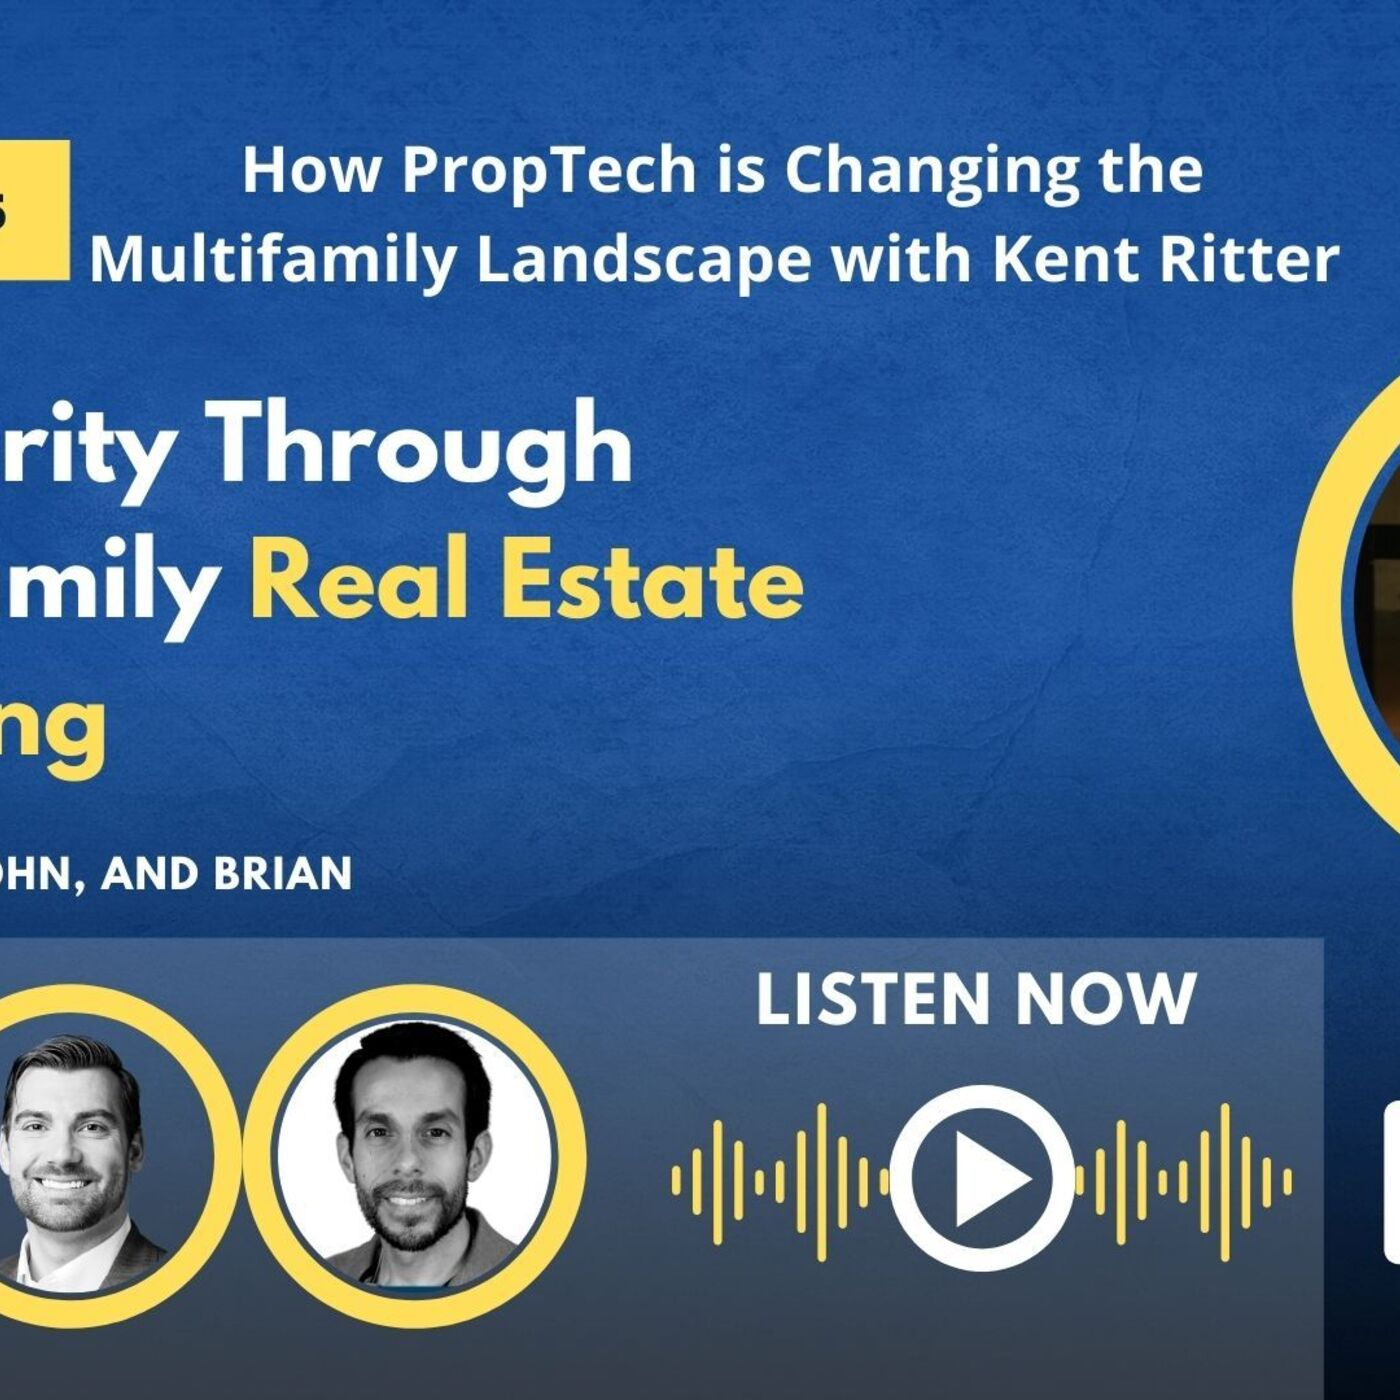 How PropTech is Changing the Multifamily Landscape with Kent Ritter